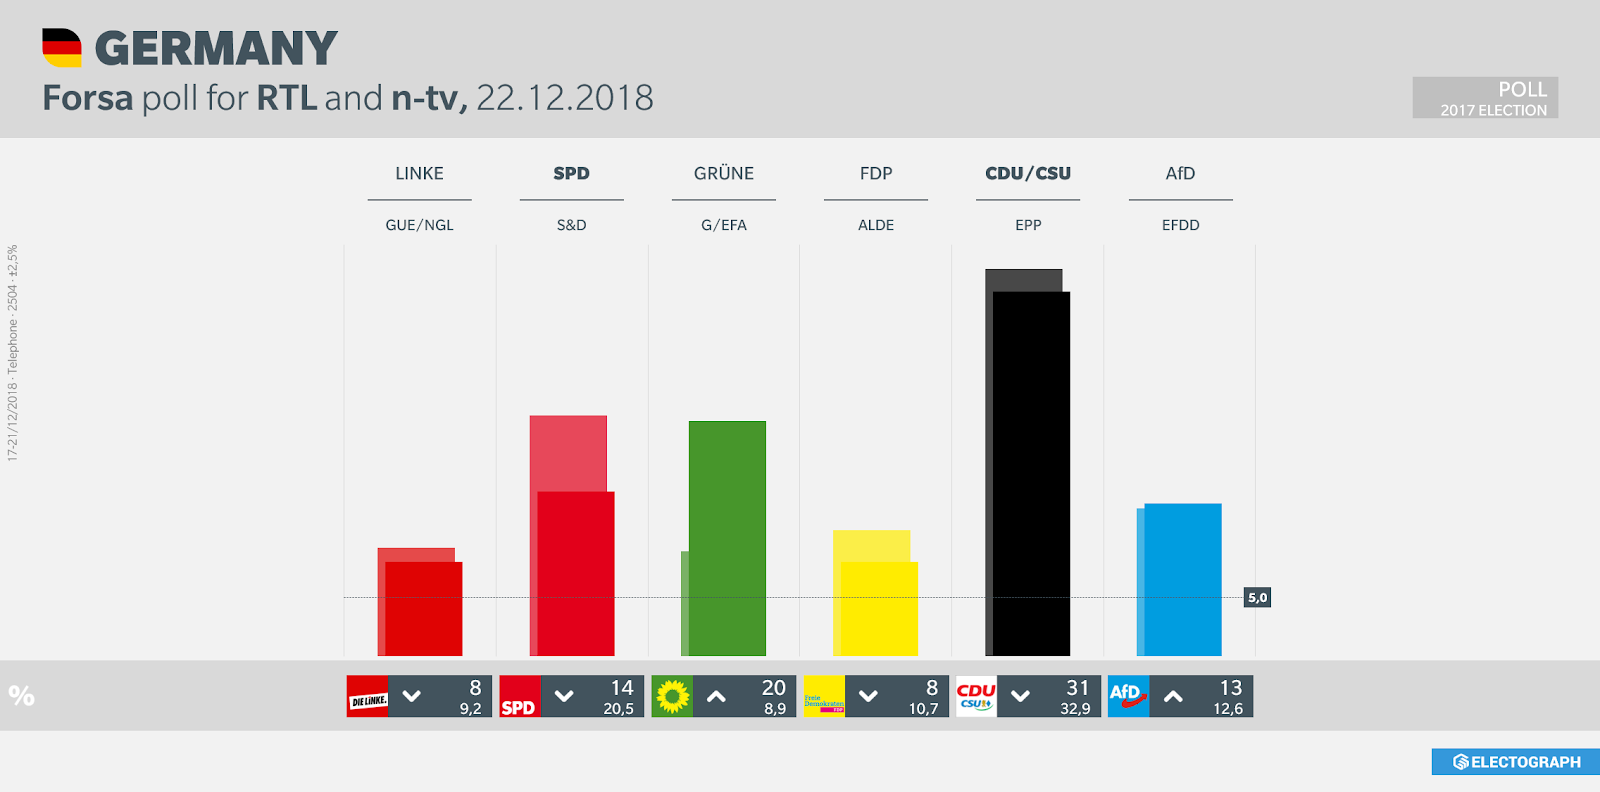 GERMANY: Forsa poll chart for RTL and n-tv, 22 December 2018